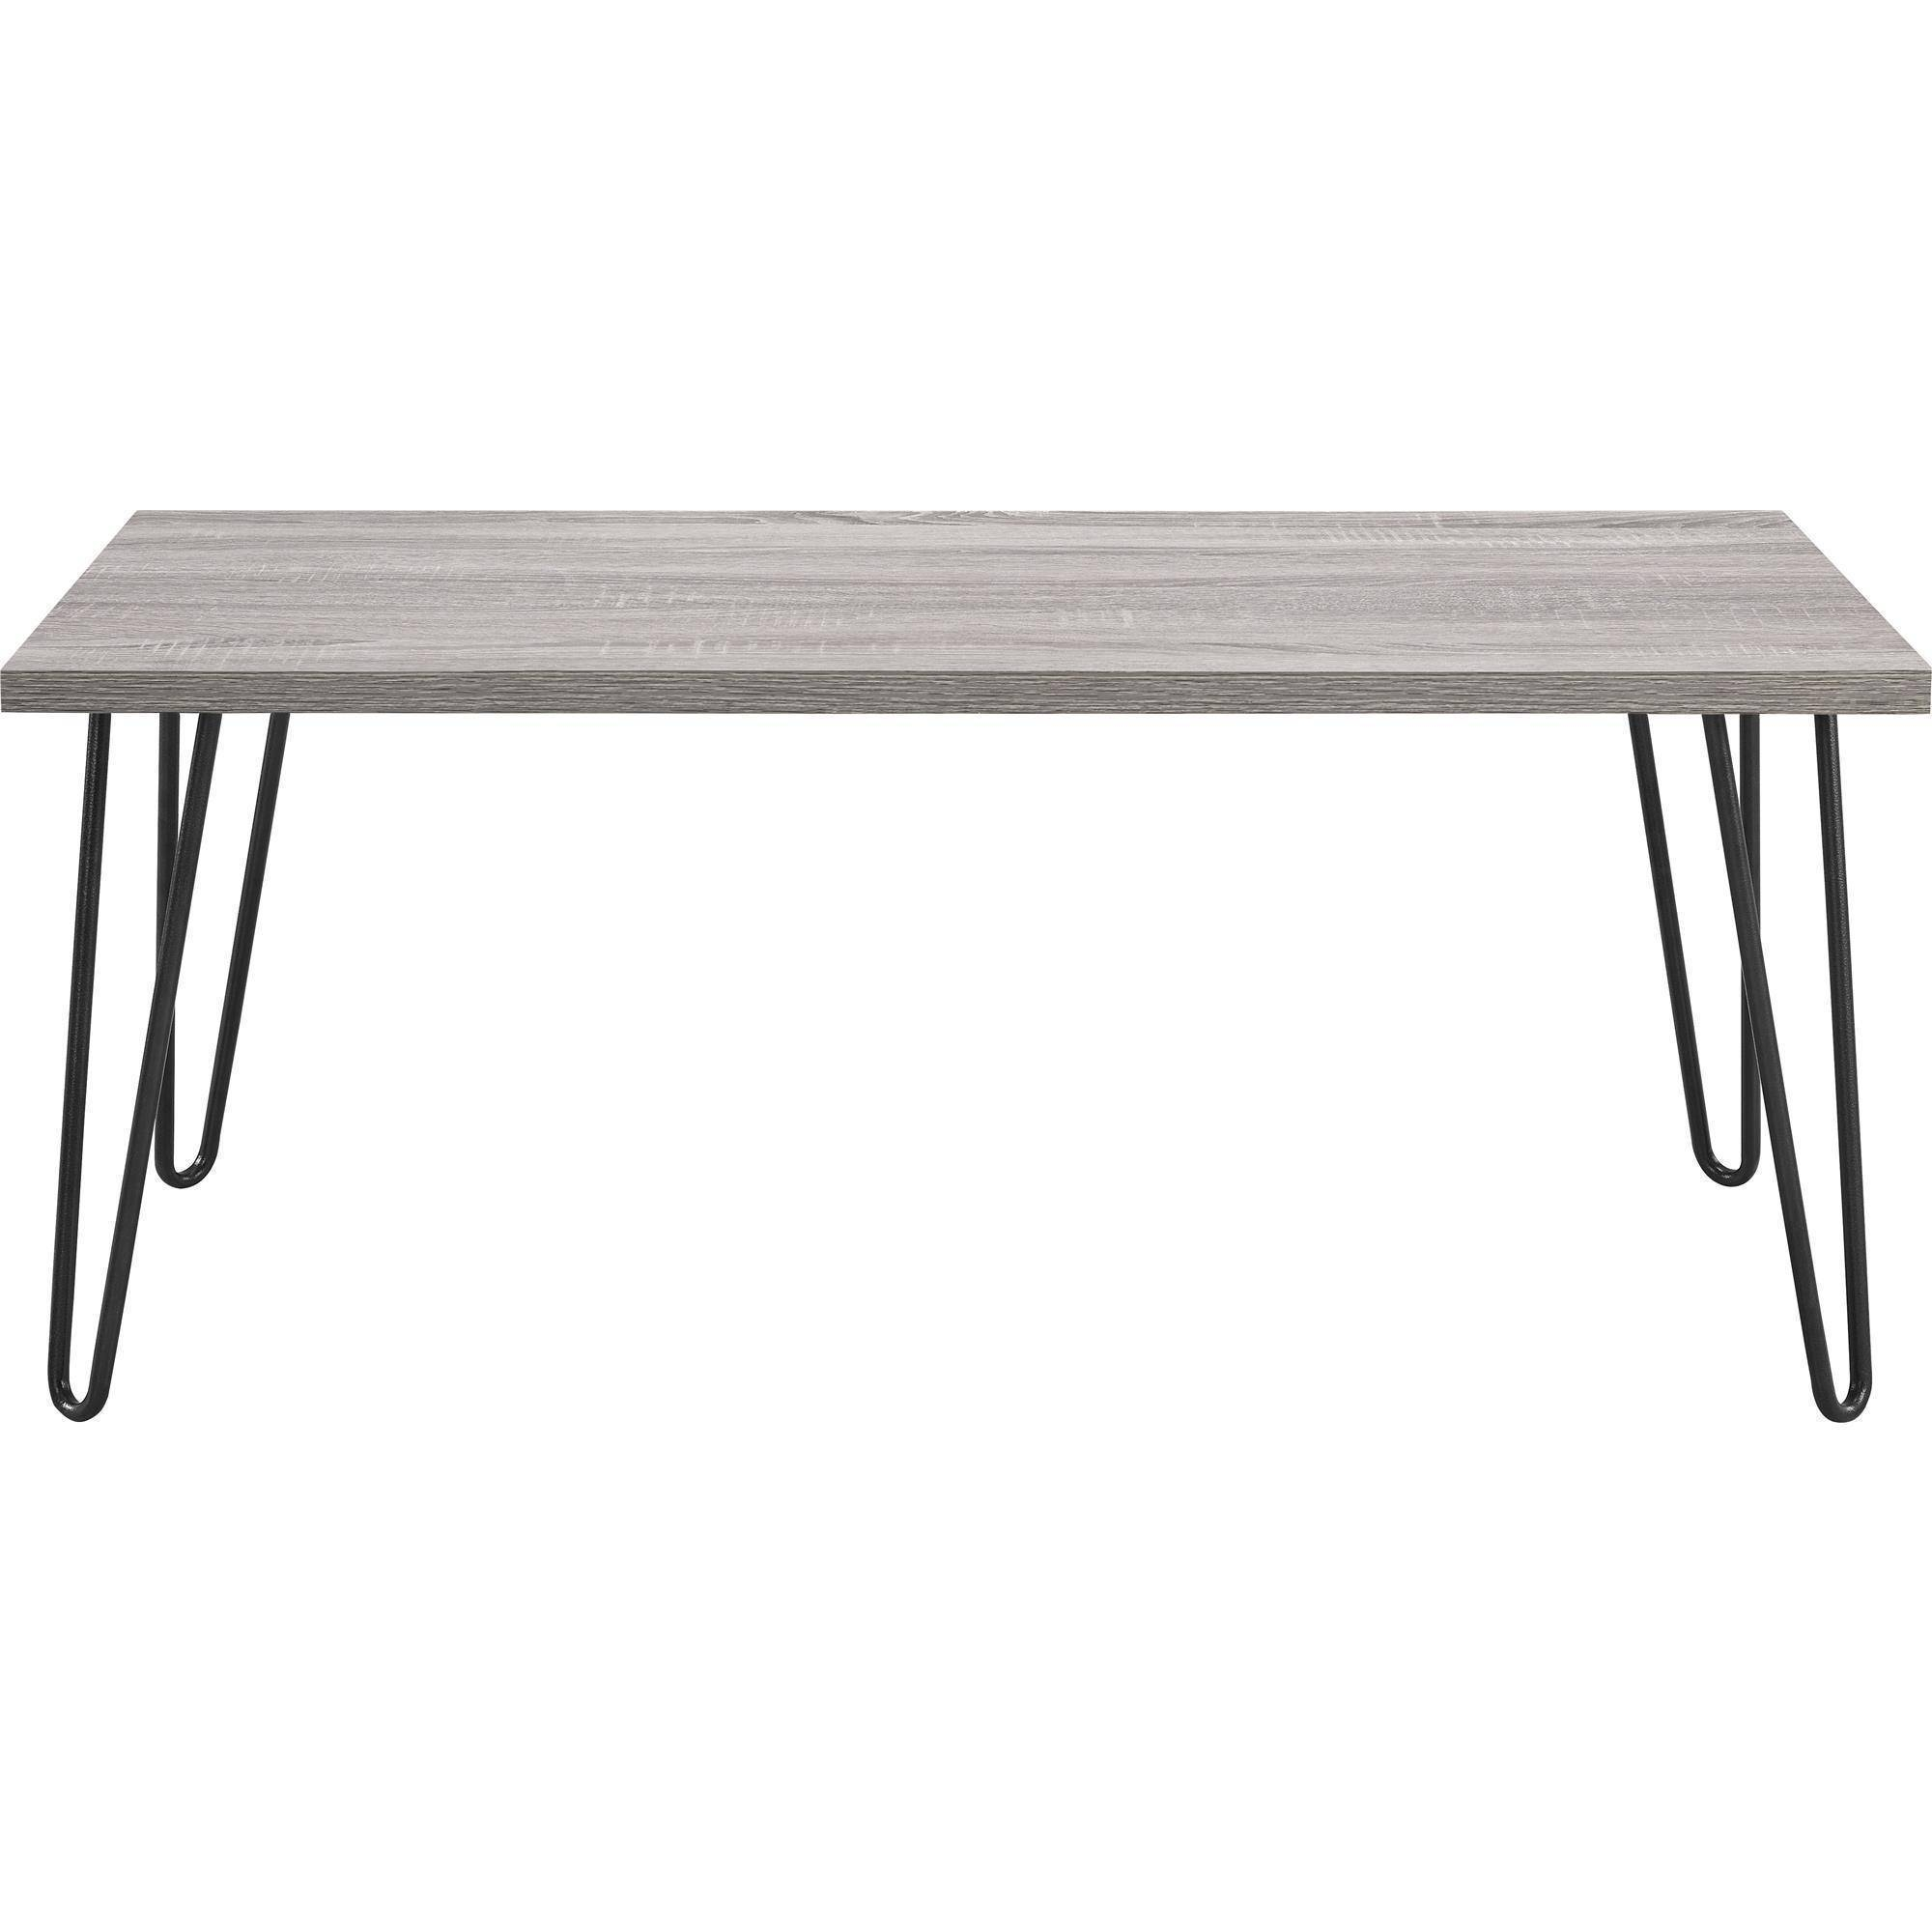 Ameriwood Home Owen Retro Coffee Table, Distressed Gray Oak within White Retro Coffee Tables (Image 5 of 30)